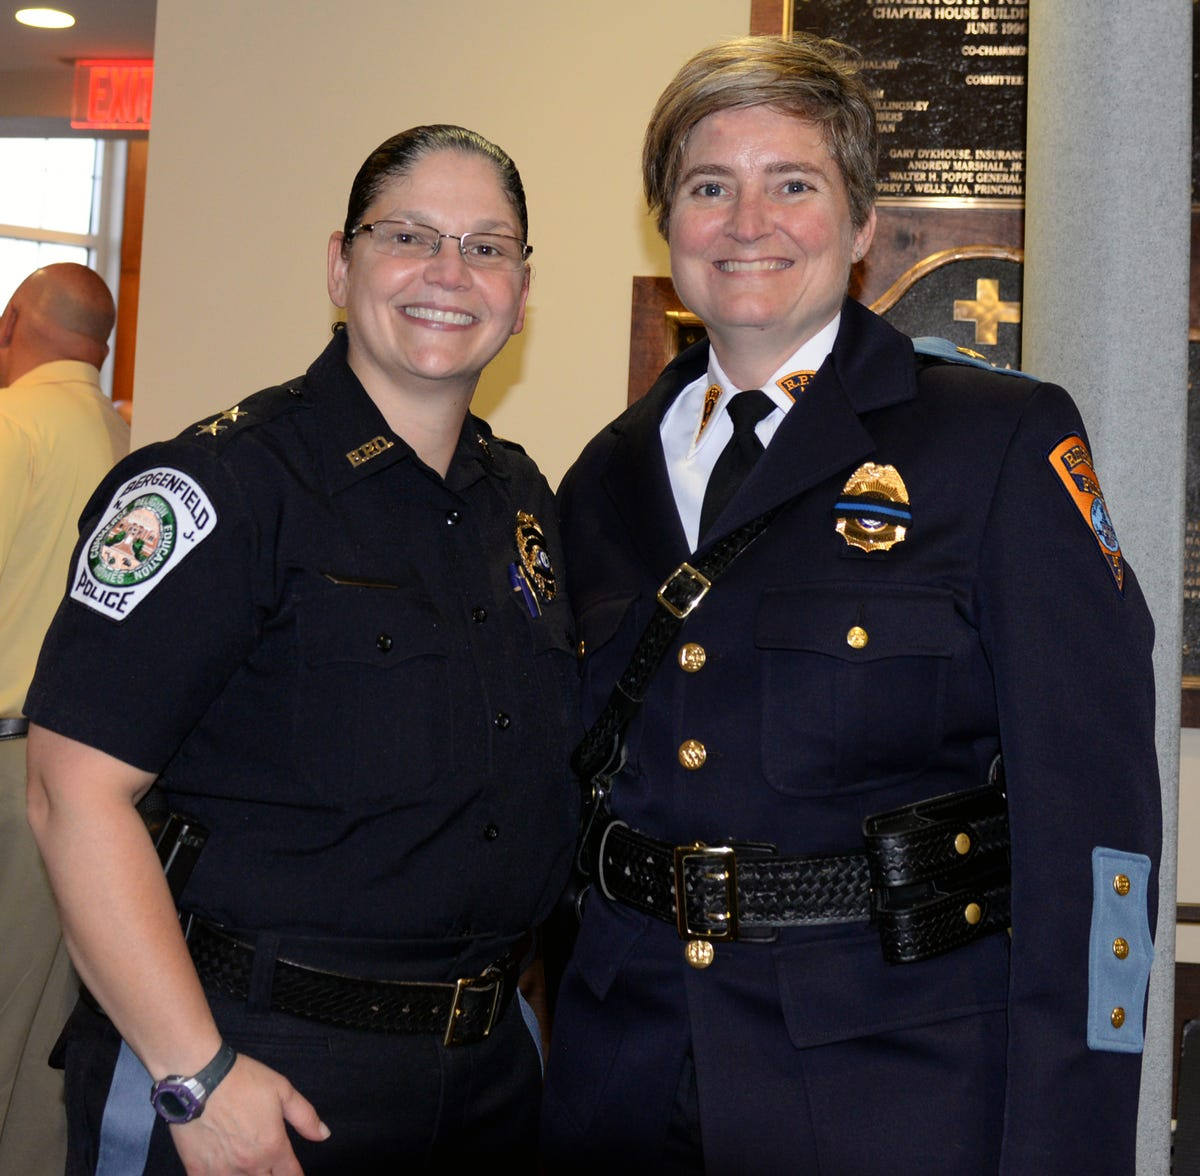 North Jersey women police officers climb the ranks, and earn